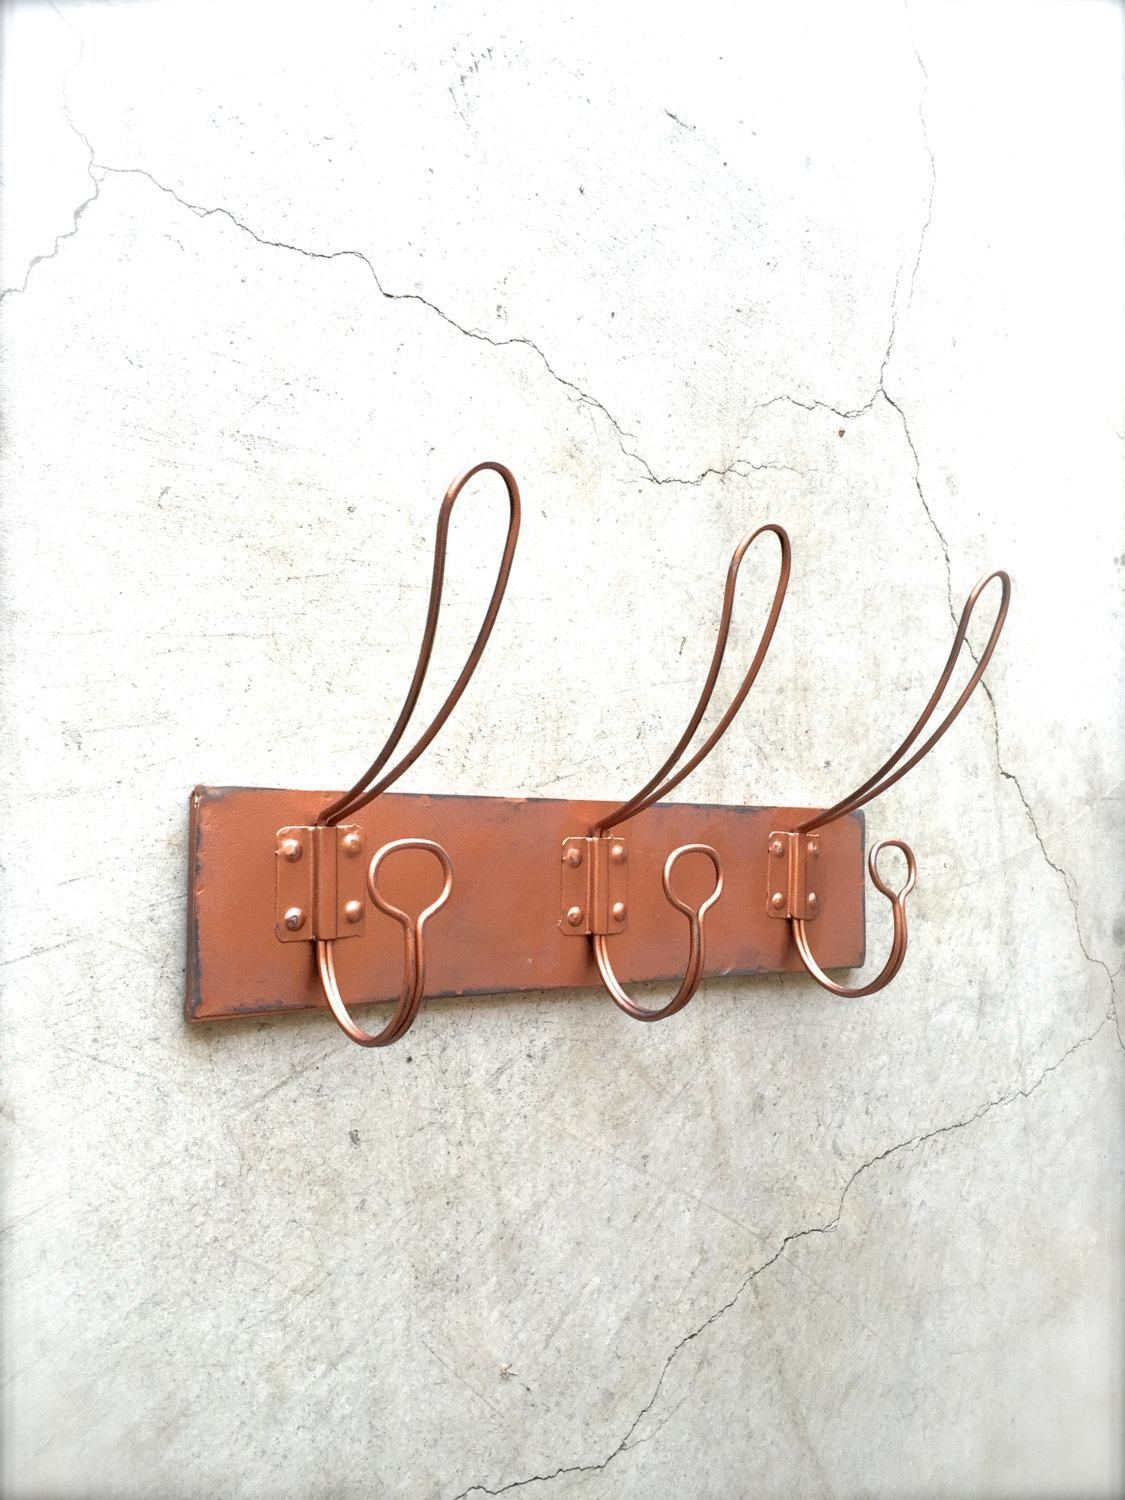 Copper Coat Rack Coat Hooks Wall Hook Rack Wall Hooks within Wall Art Coat Hooks